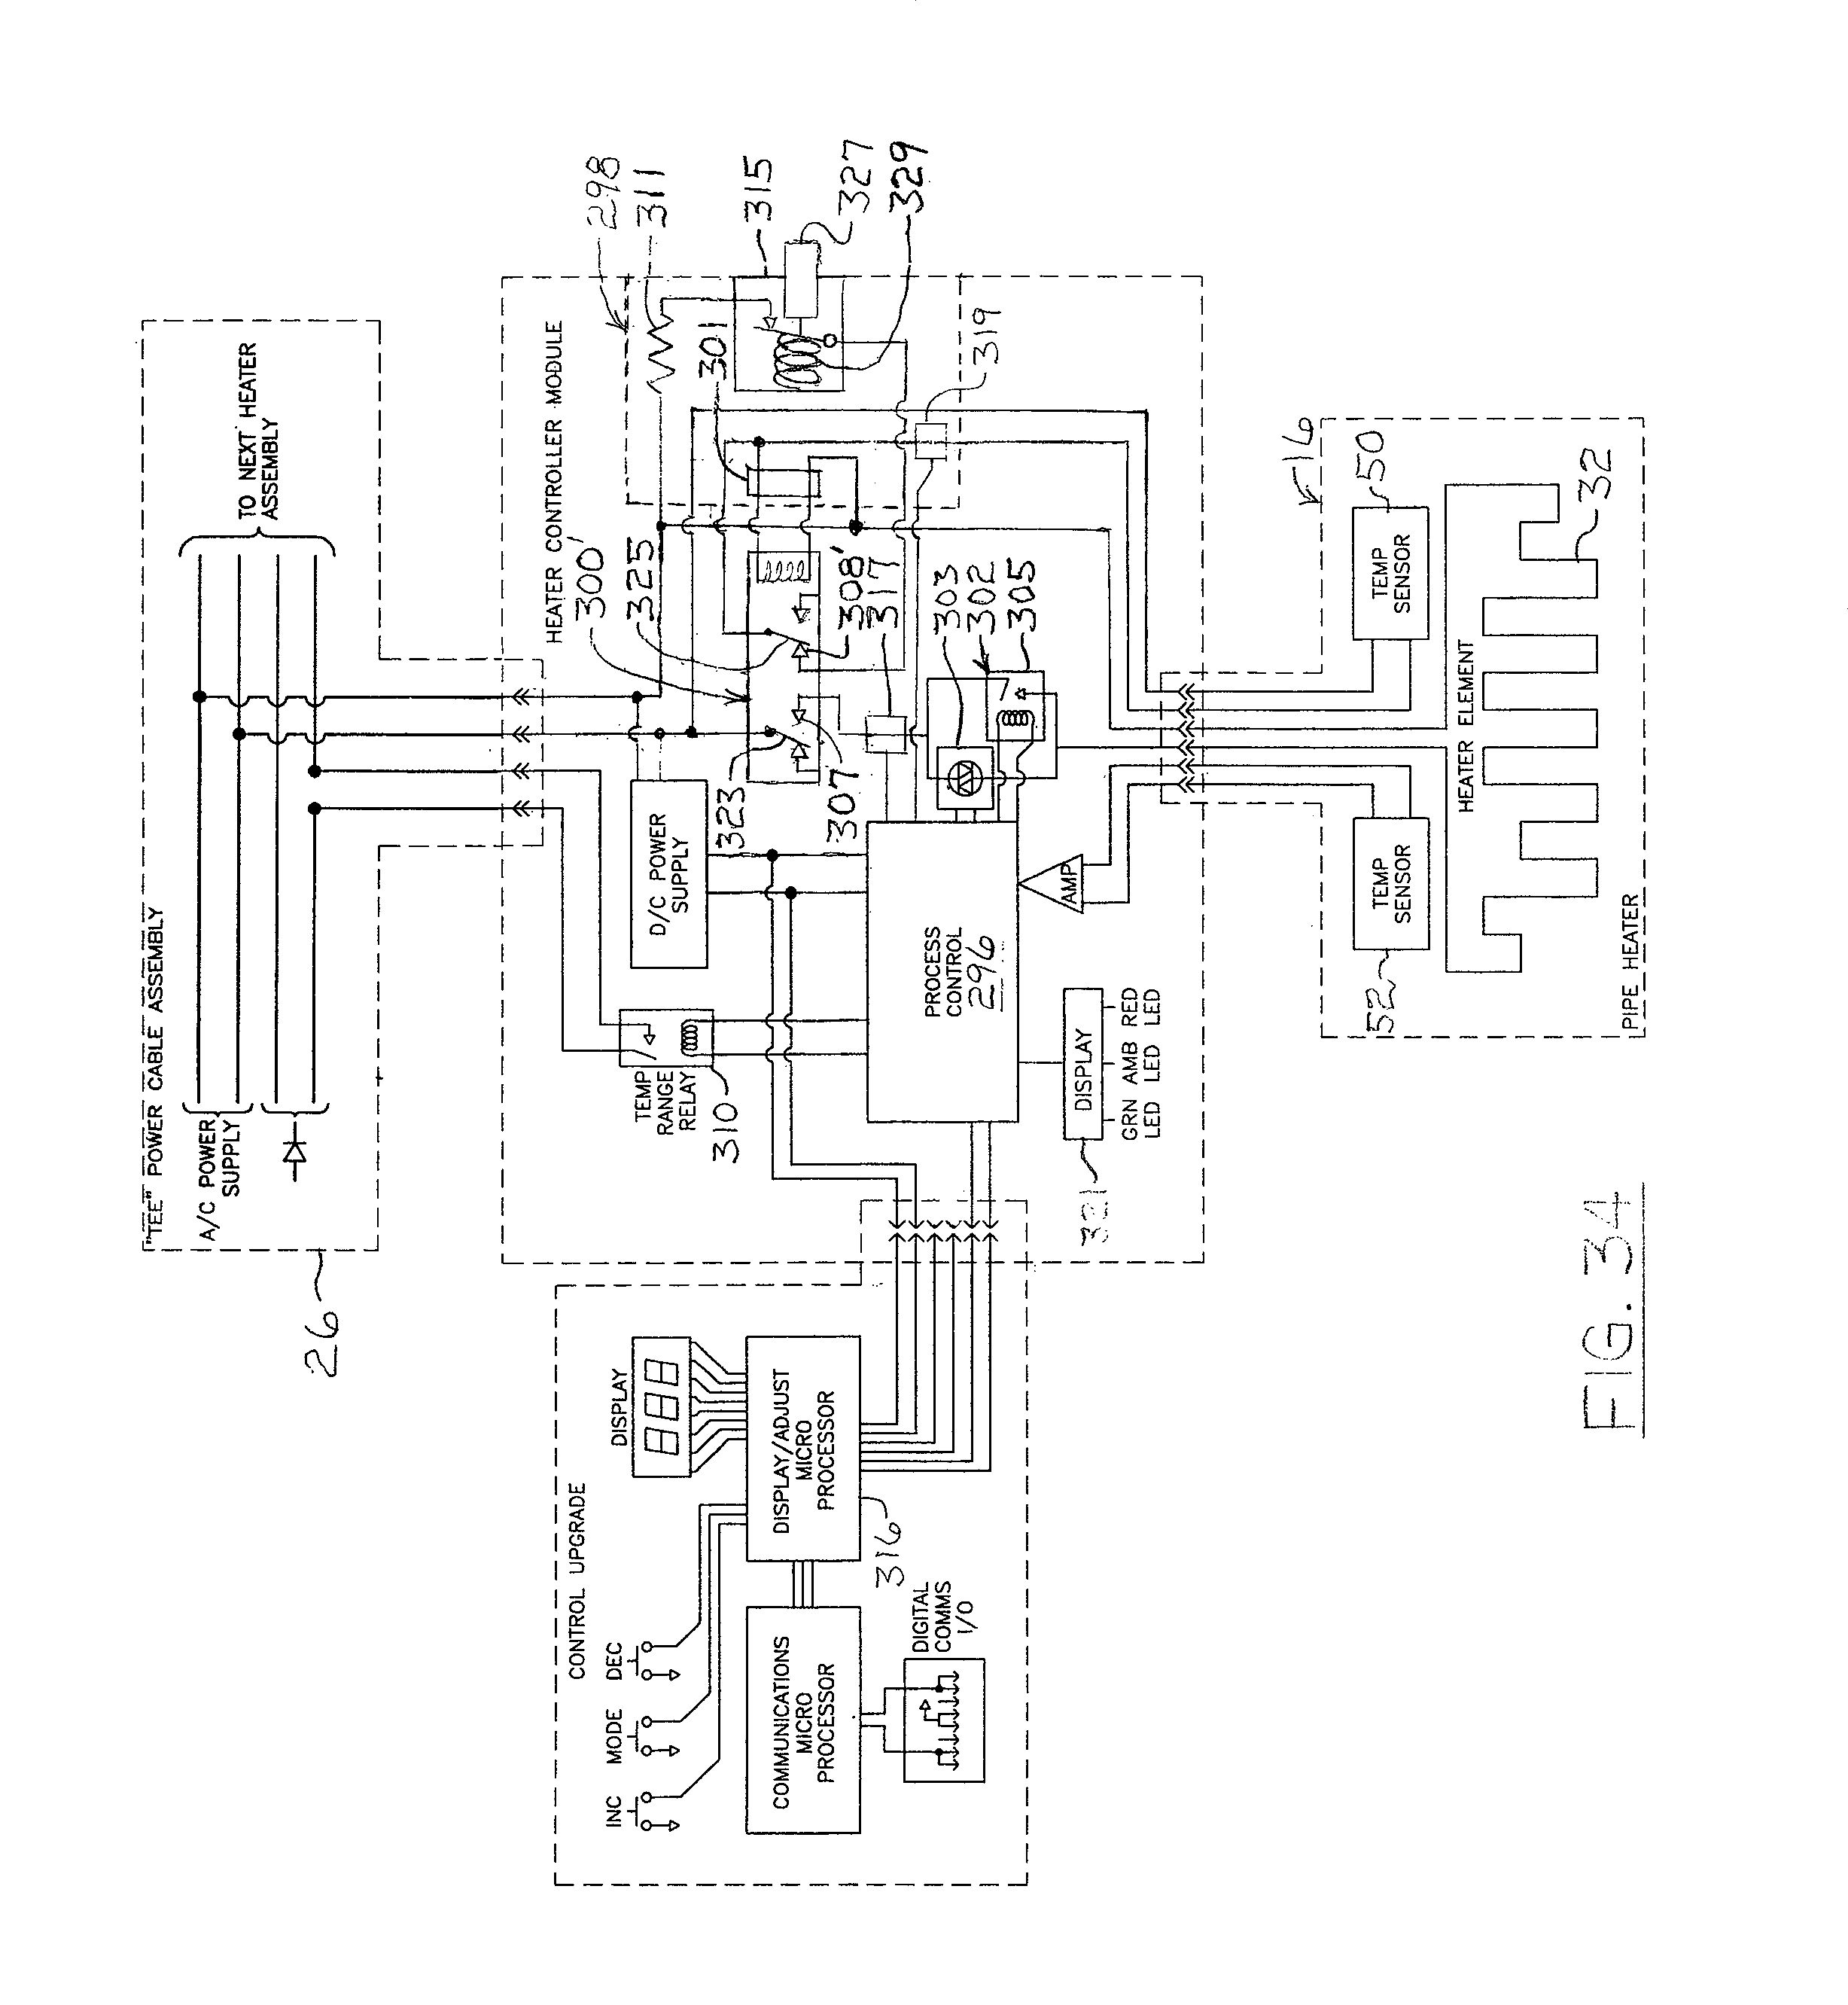 Bath Pump With Tee Heater And Union as well US7932480 in addition B817e Transistor Datasheet furthermore 2 besides Hobs. on ac heater combinations